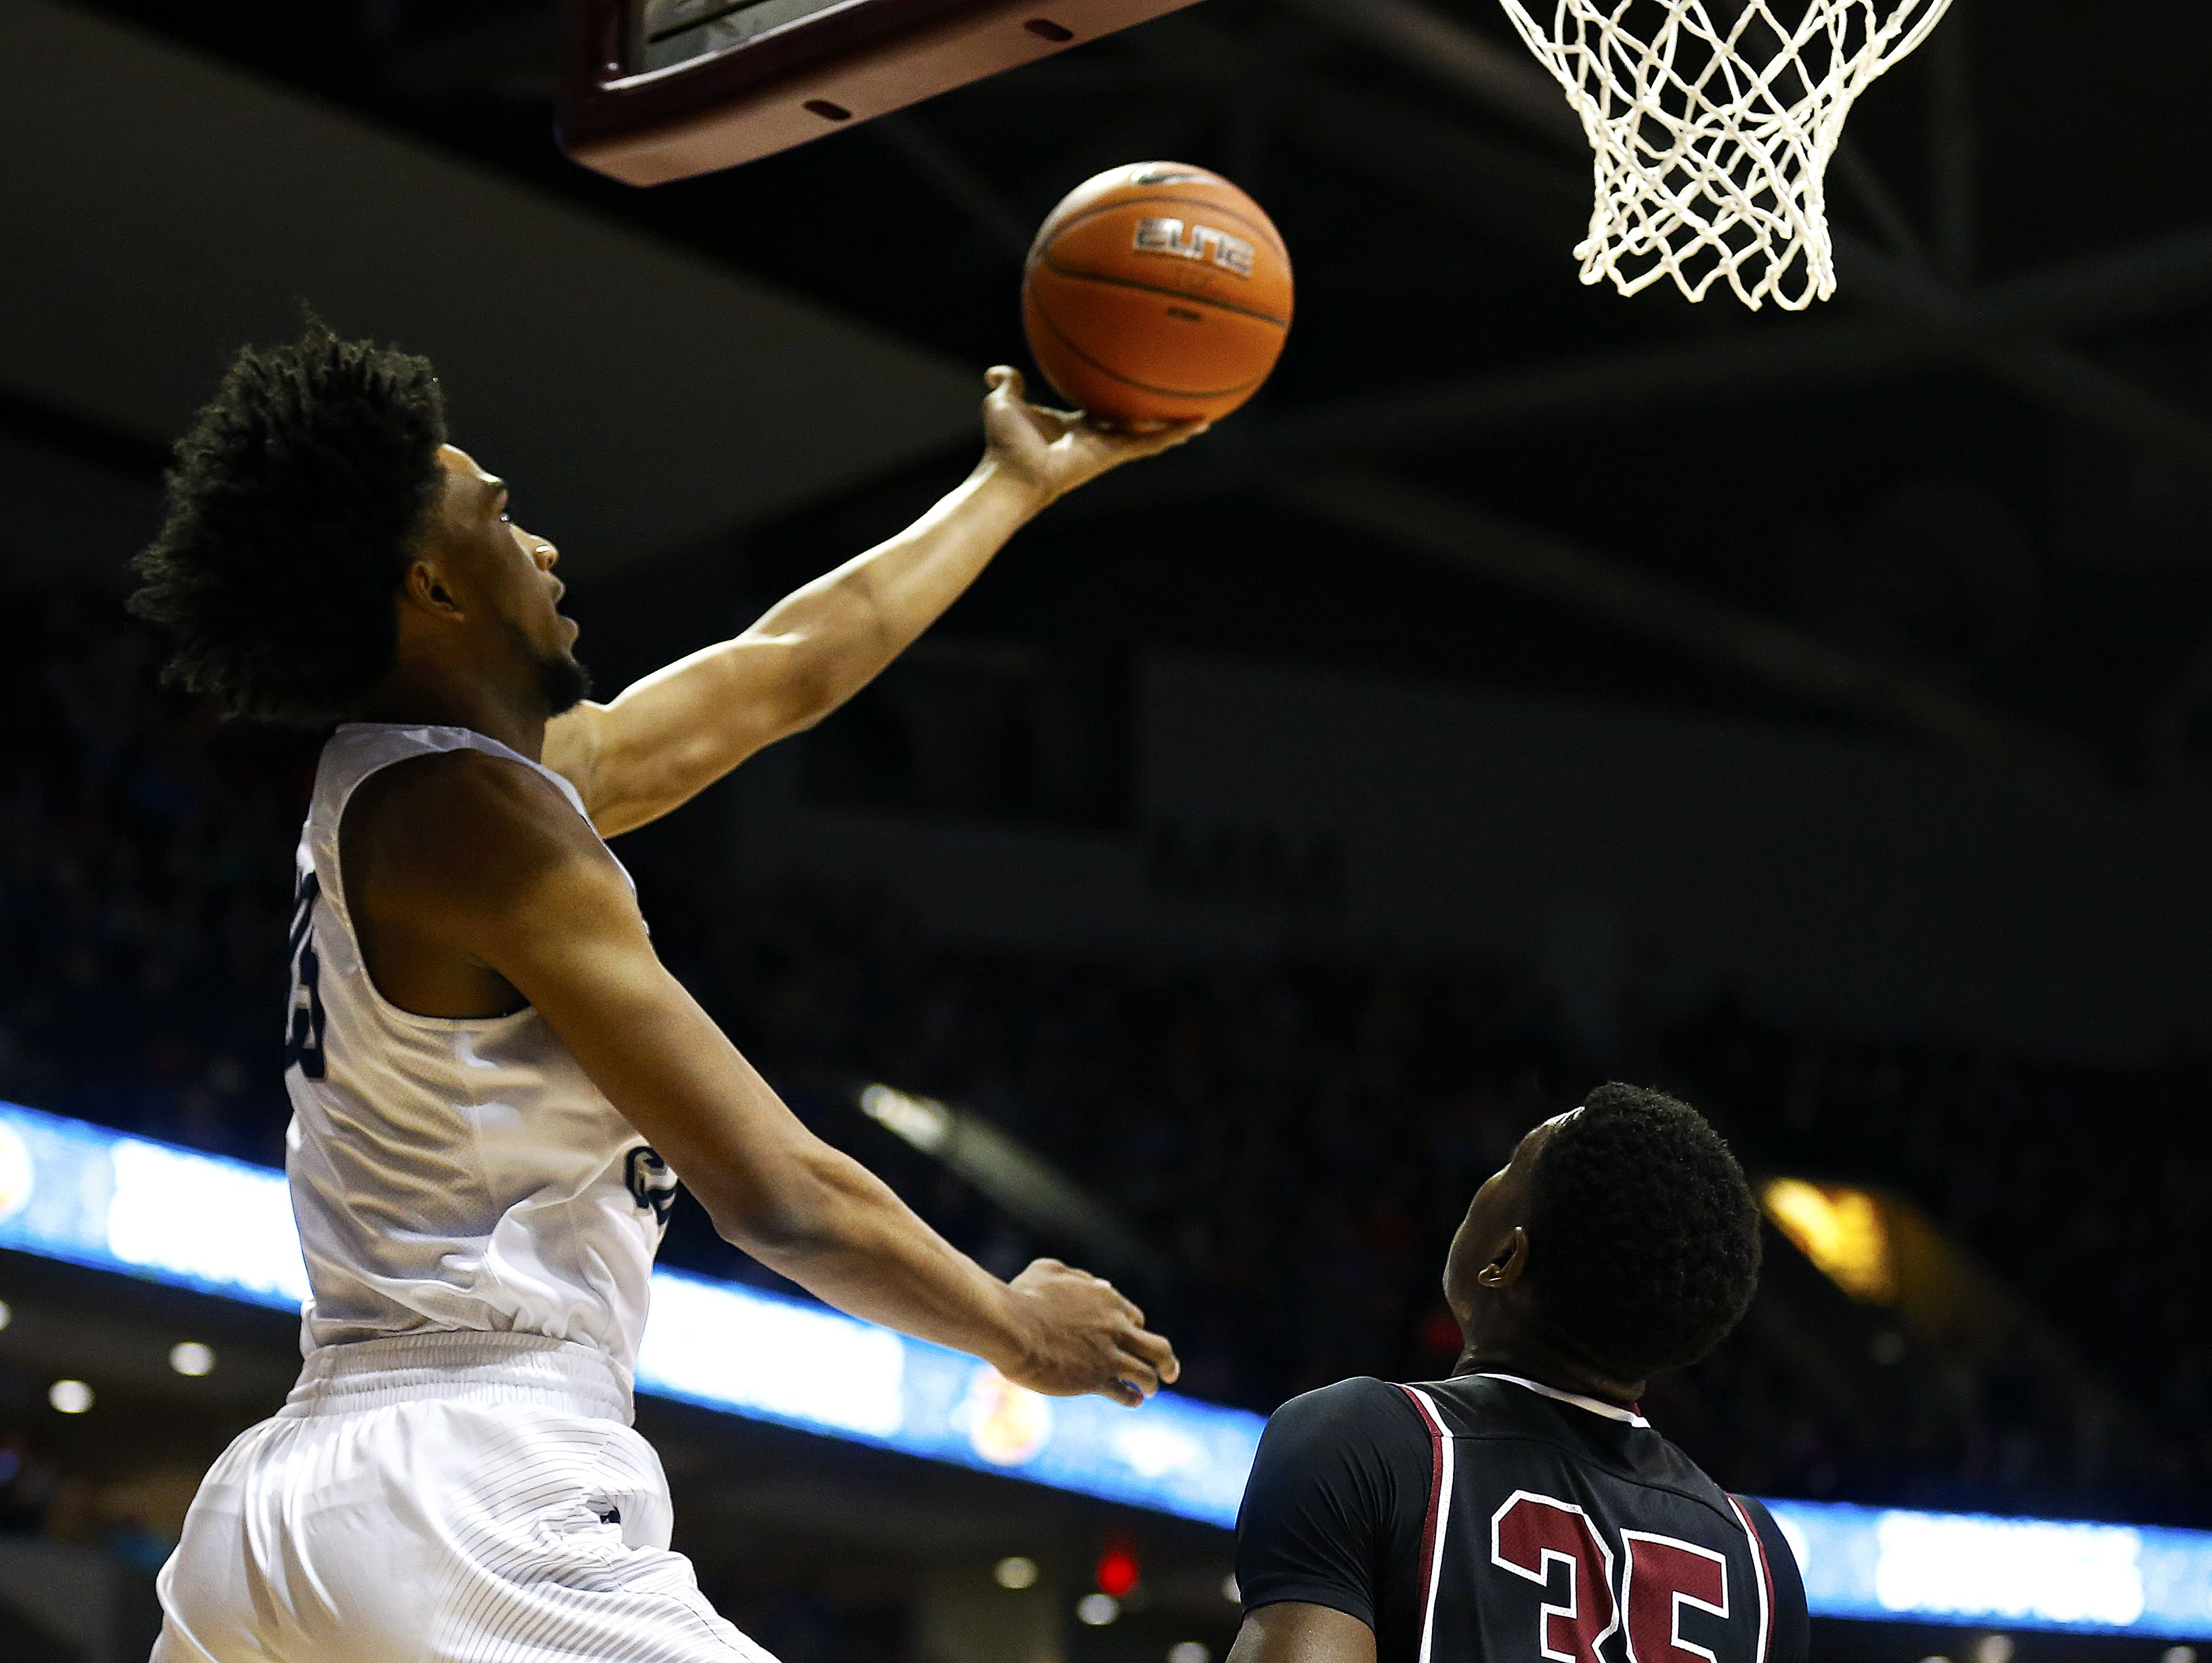 Sierra Canyon School (Chatsworth, Calif.) forward Marvin Bagley III (35) shoots a layup during first quarter action of the 2017 Bass Pro Tournament of Champions championship game between the Sierra Canyon School Trailblazers (Chatsworth, Calif.) and the Memphis East High School Mustangs (Memphis, Tenn.) at JQH Arena in Springfield, Mo. on Jan. 14, 2017.